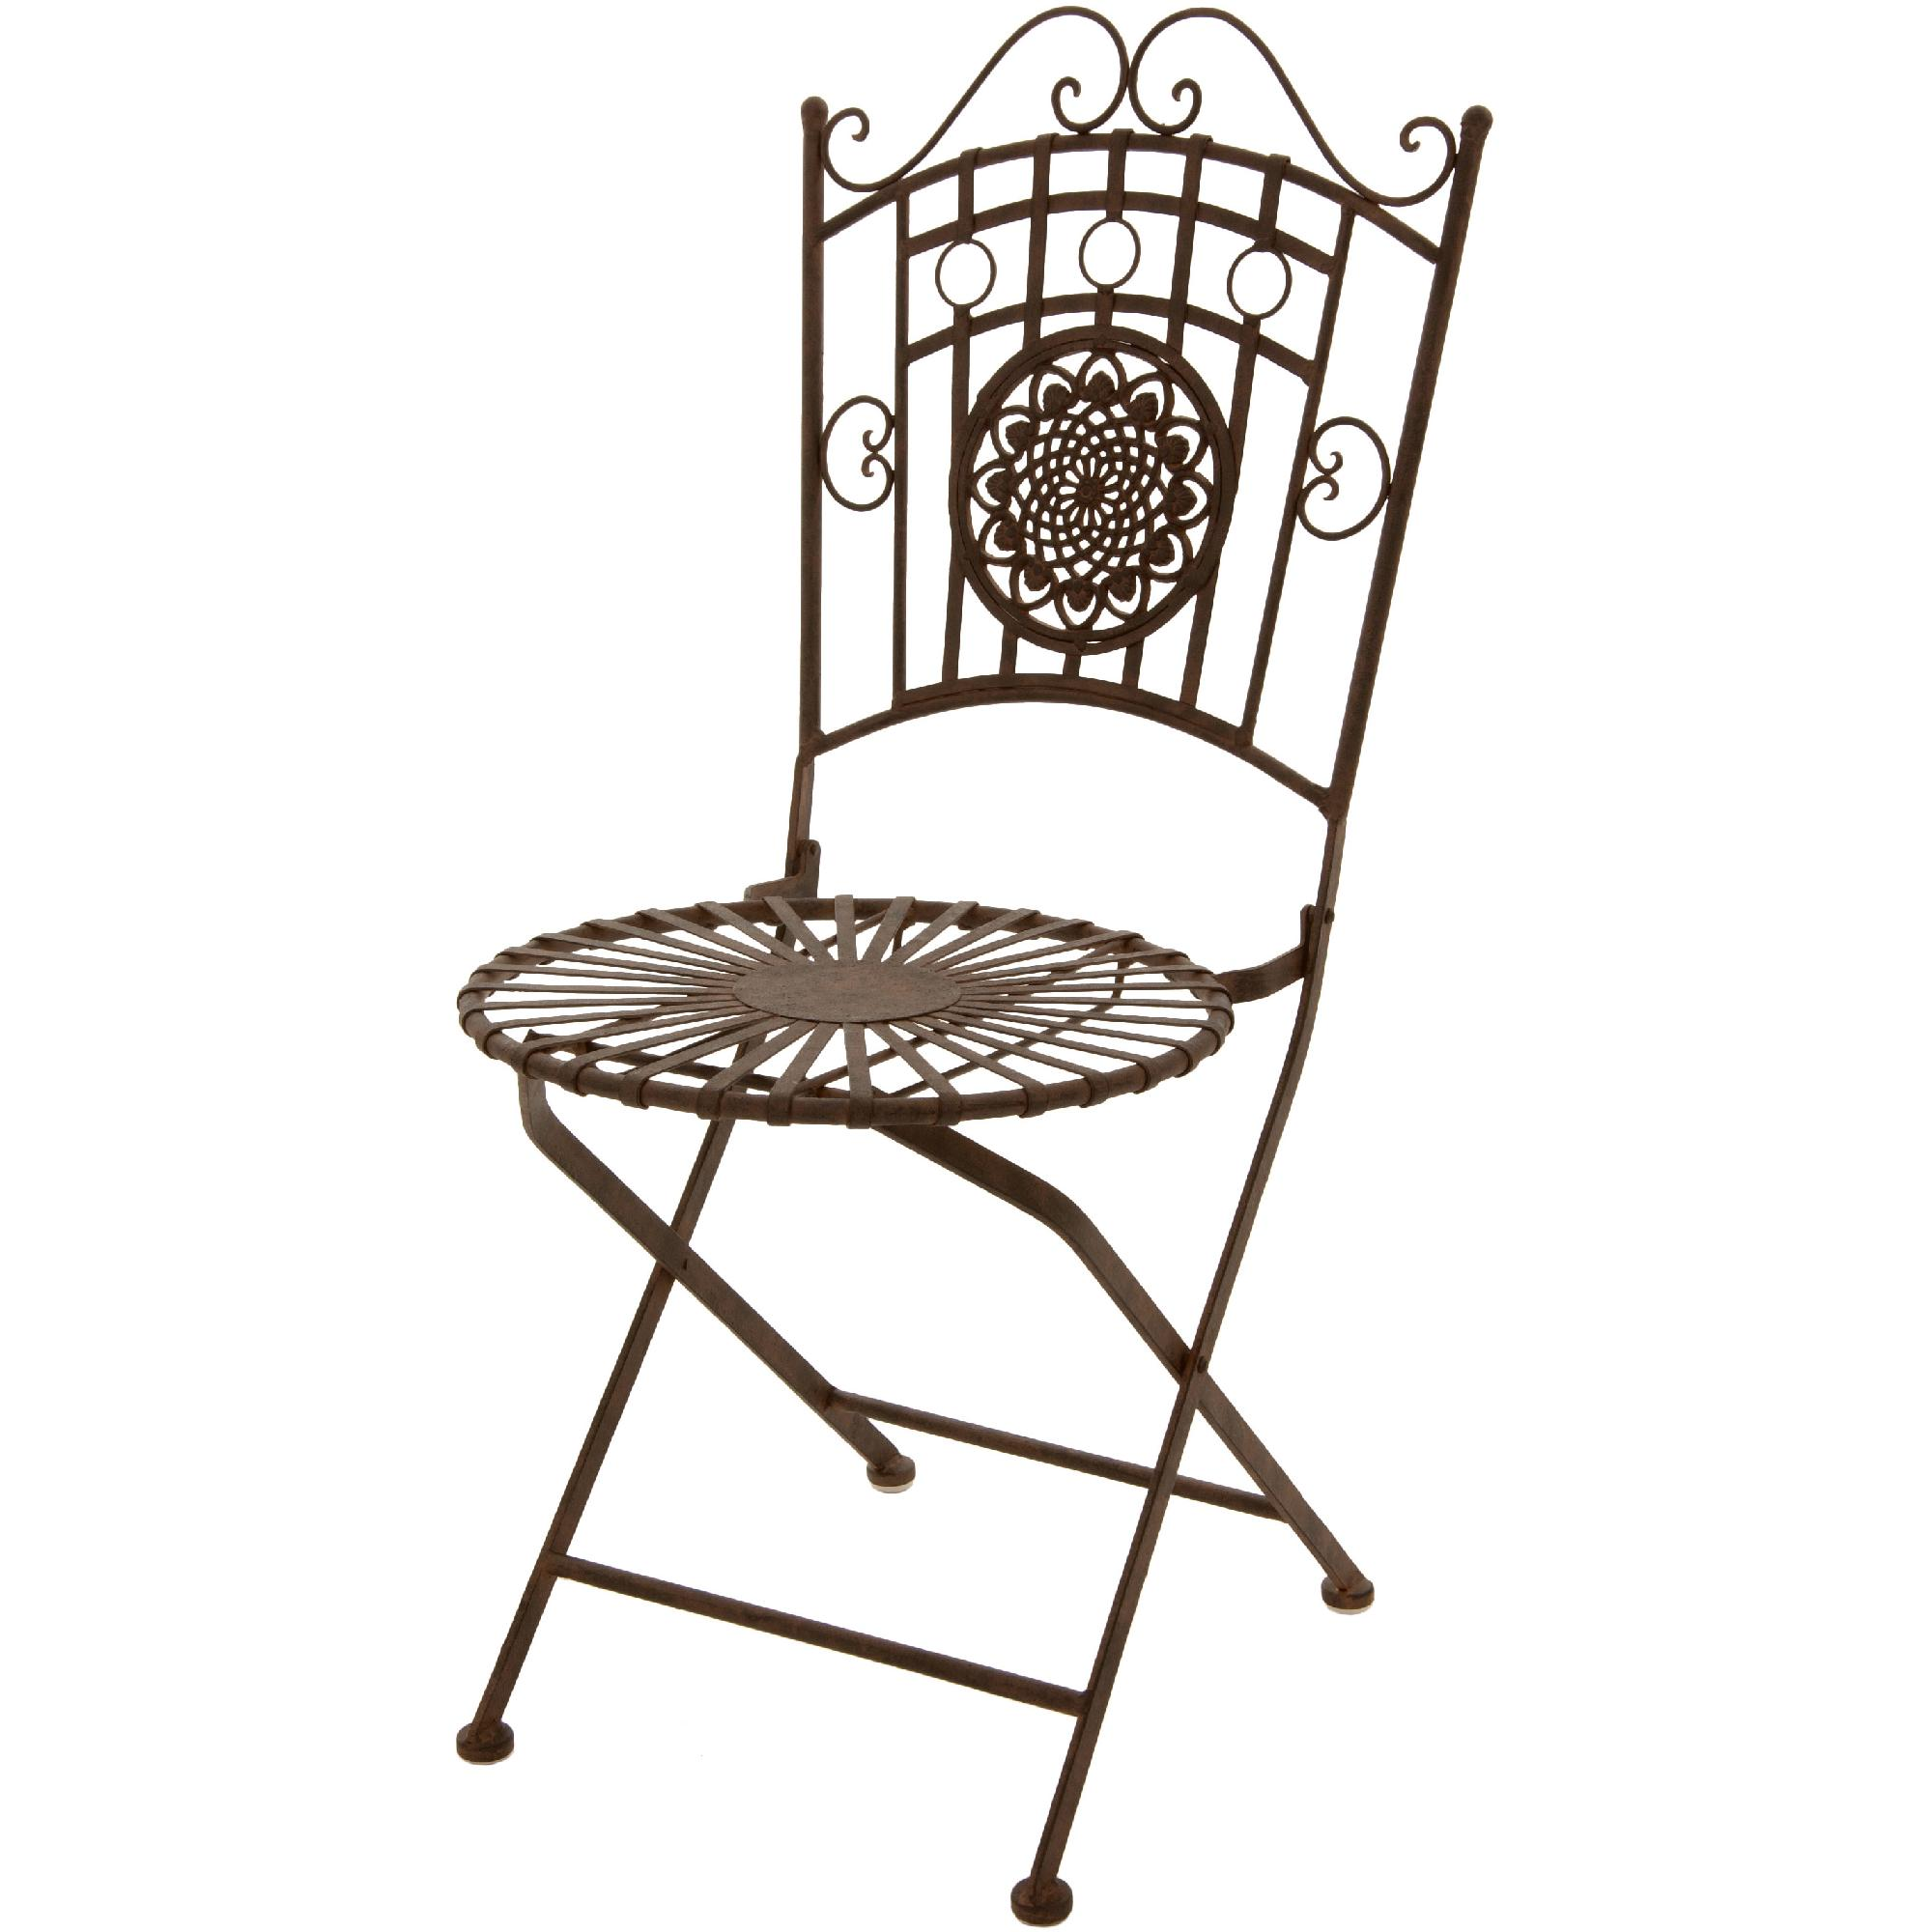 Iron Patio Chairs Oriental Furniture Wrought Iron Garden Chair Rust Patina